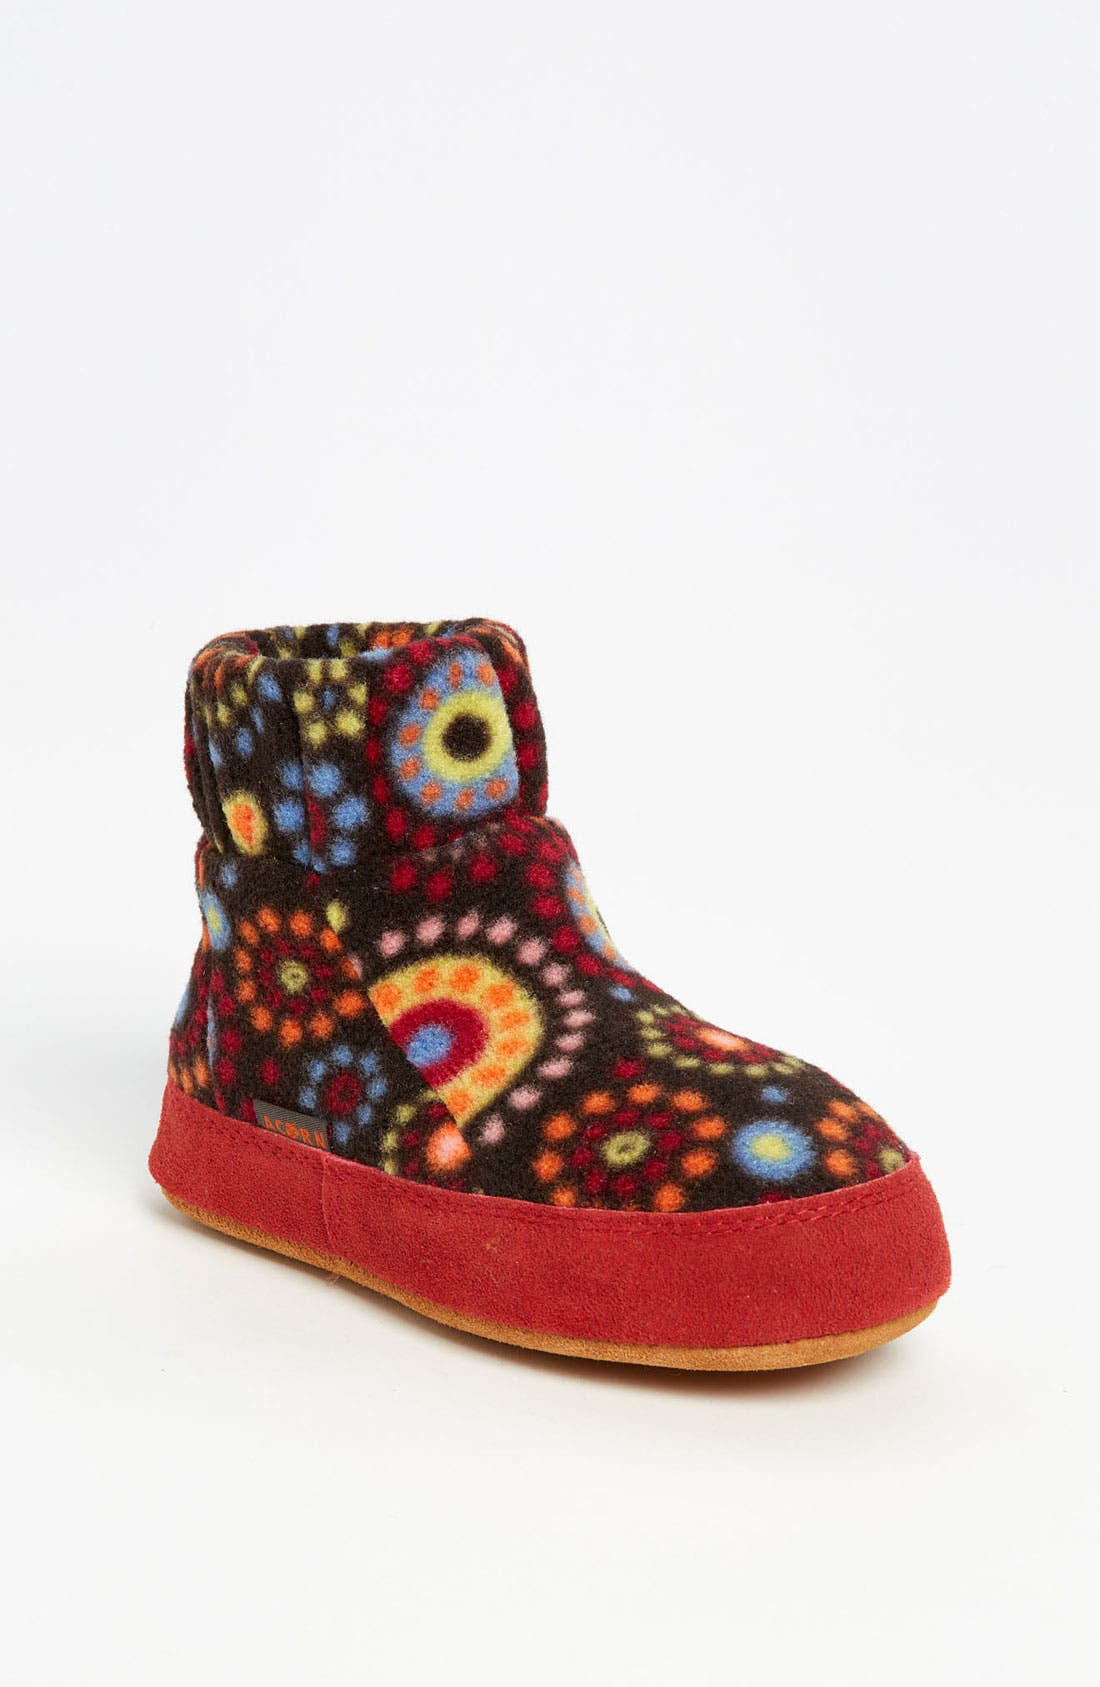 Main Image - Acorn 'Kadabra' Bootie Slipper (Toddler, Little Kid & Big Kid)